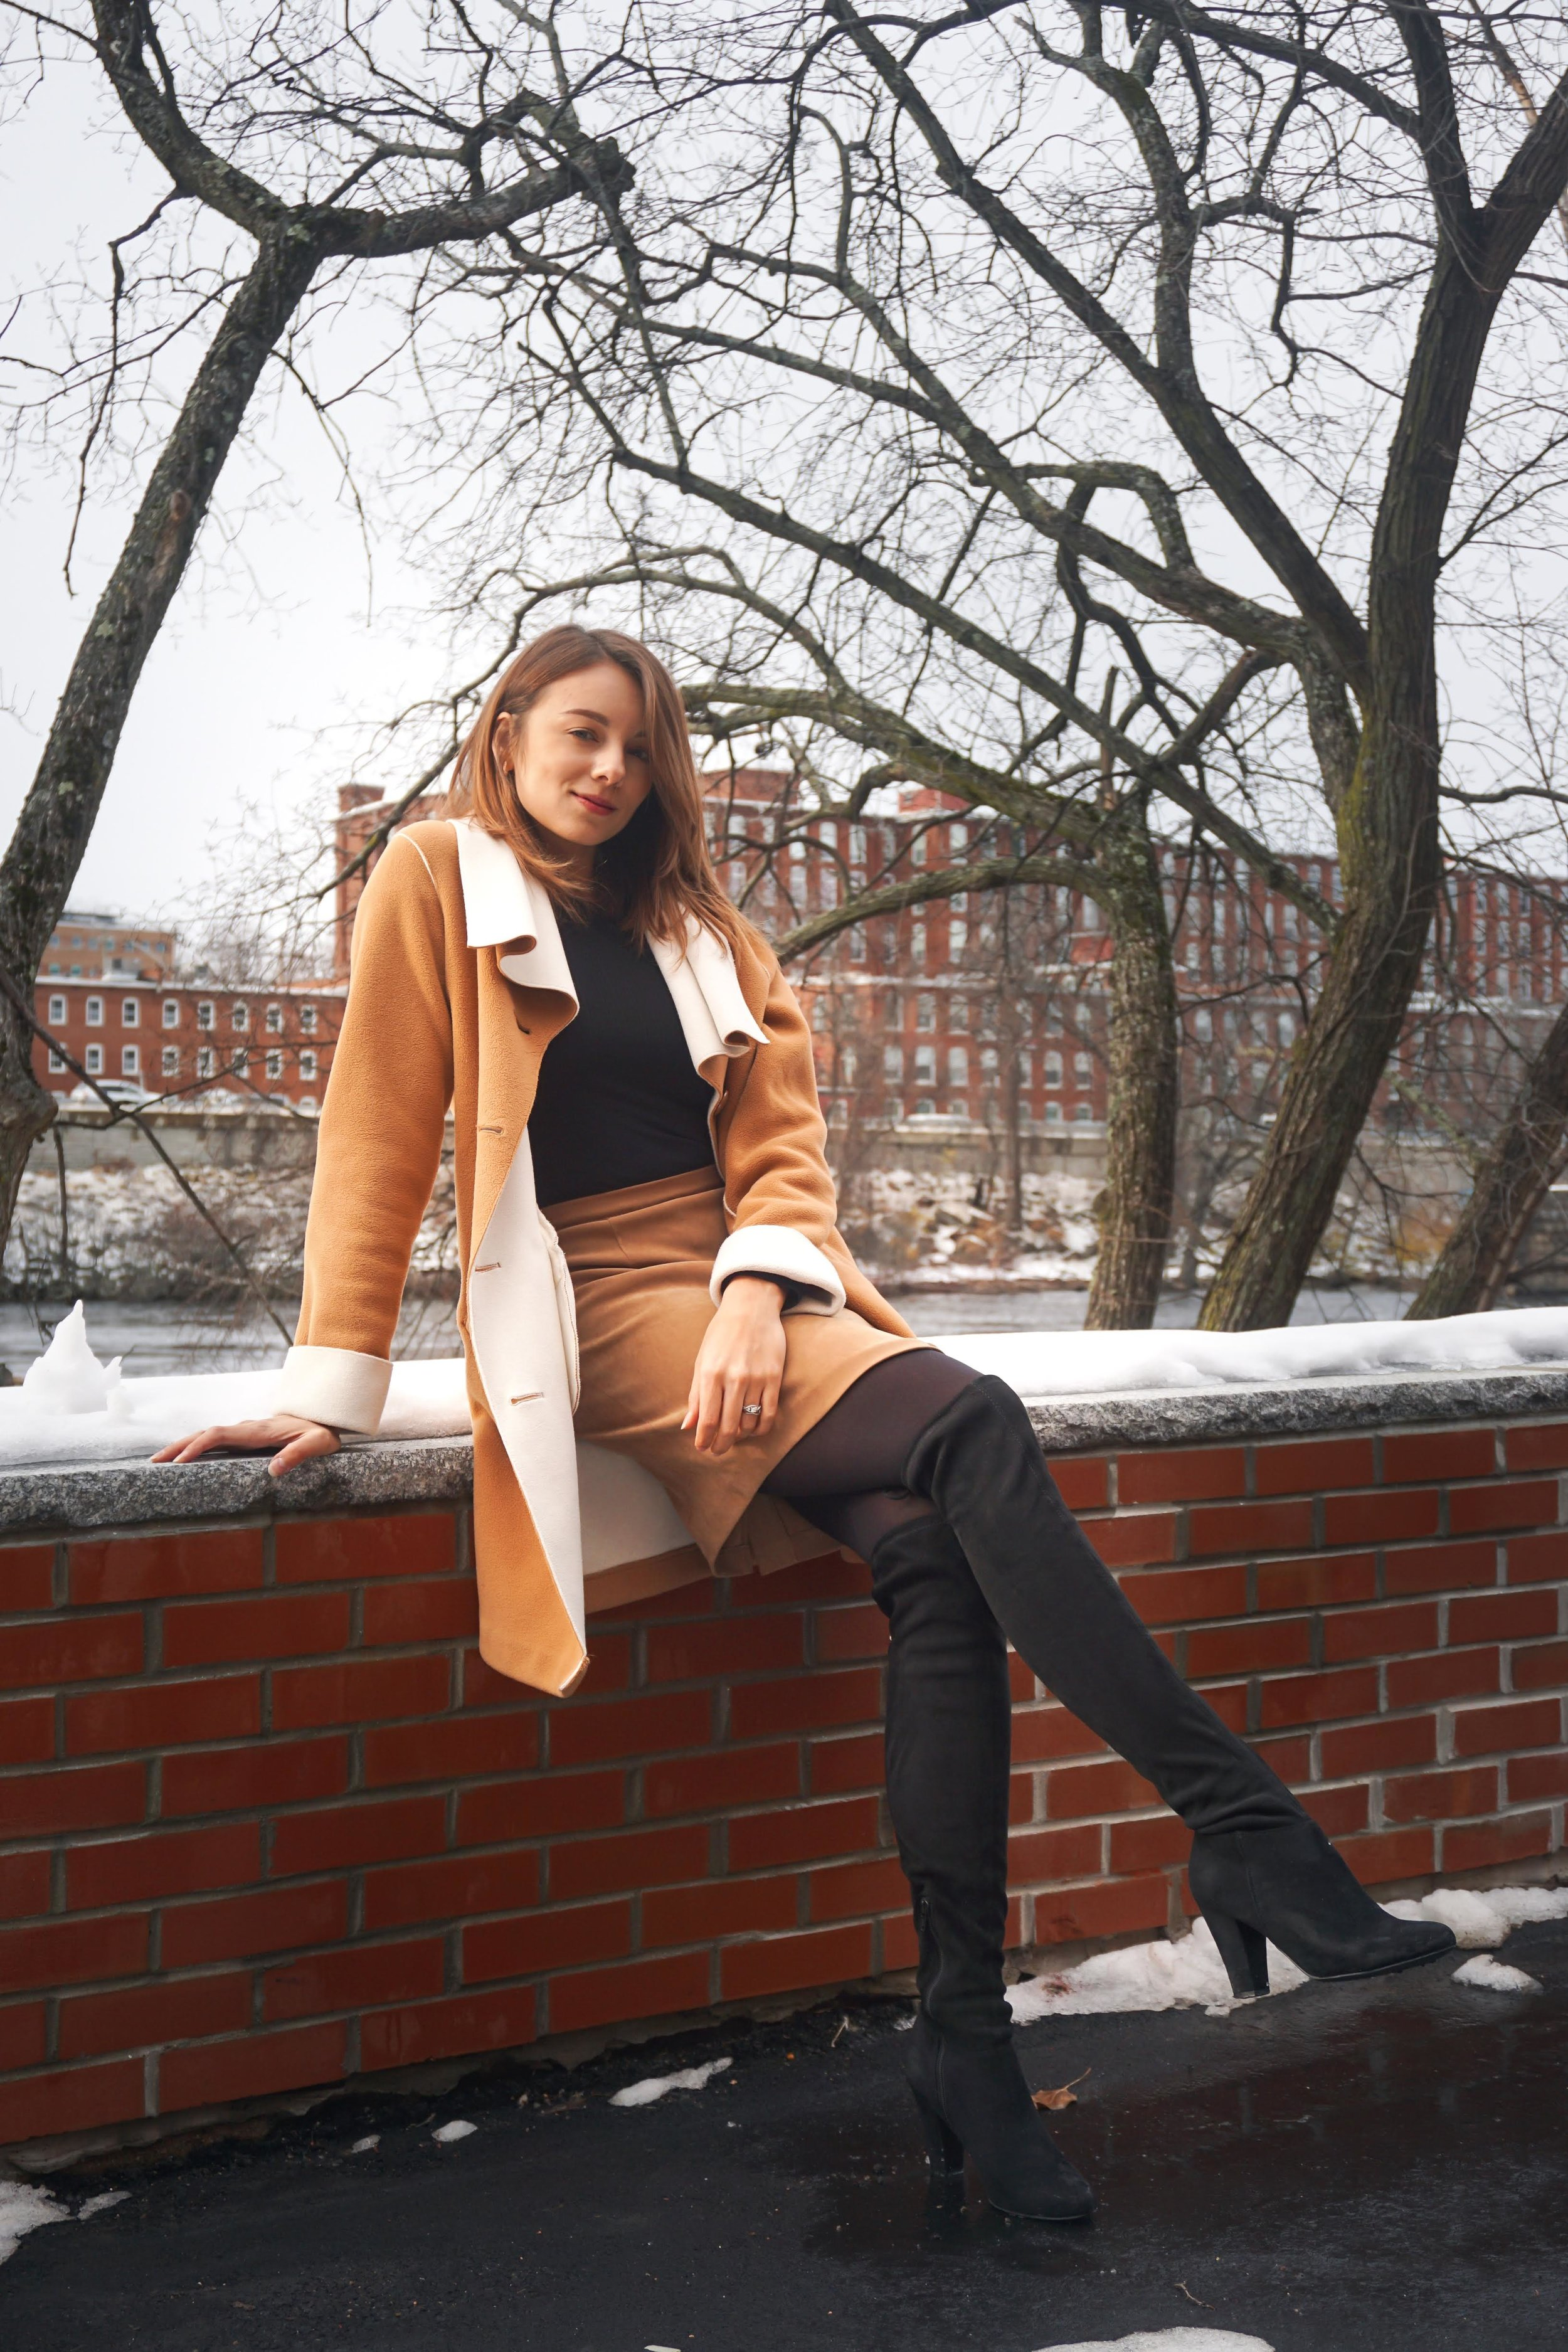 Blogger wearing a black and brown outfit while sitting near a river.